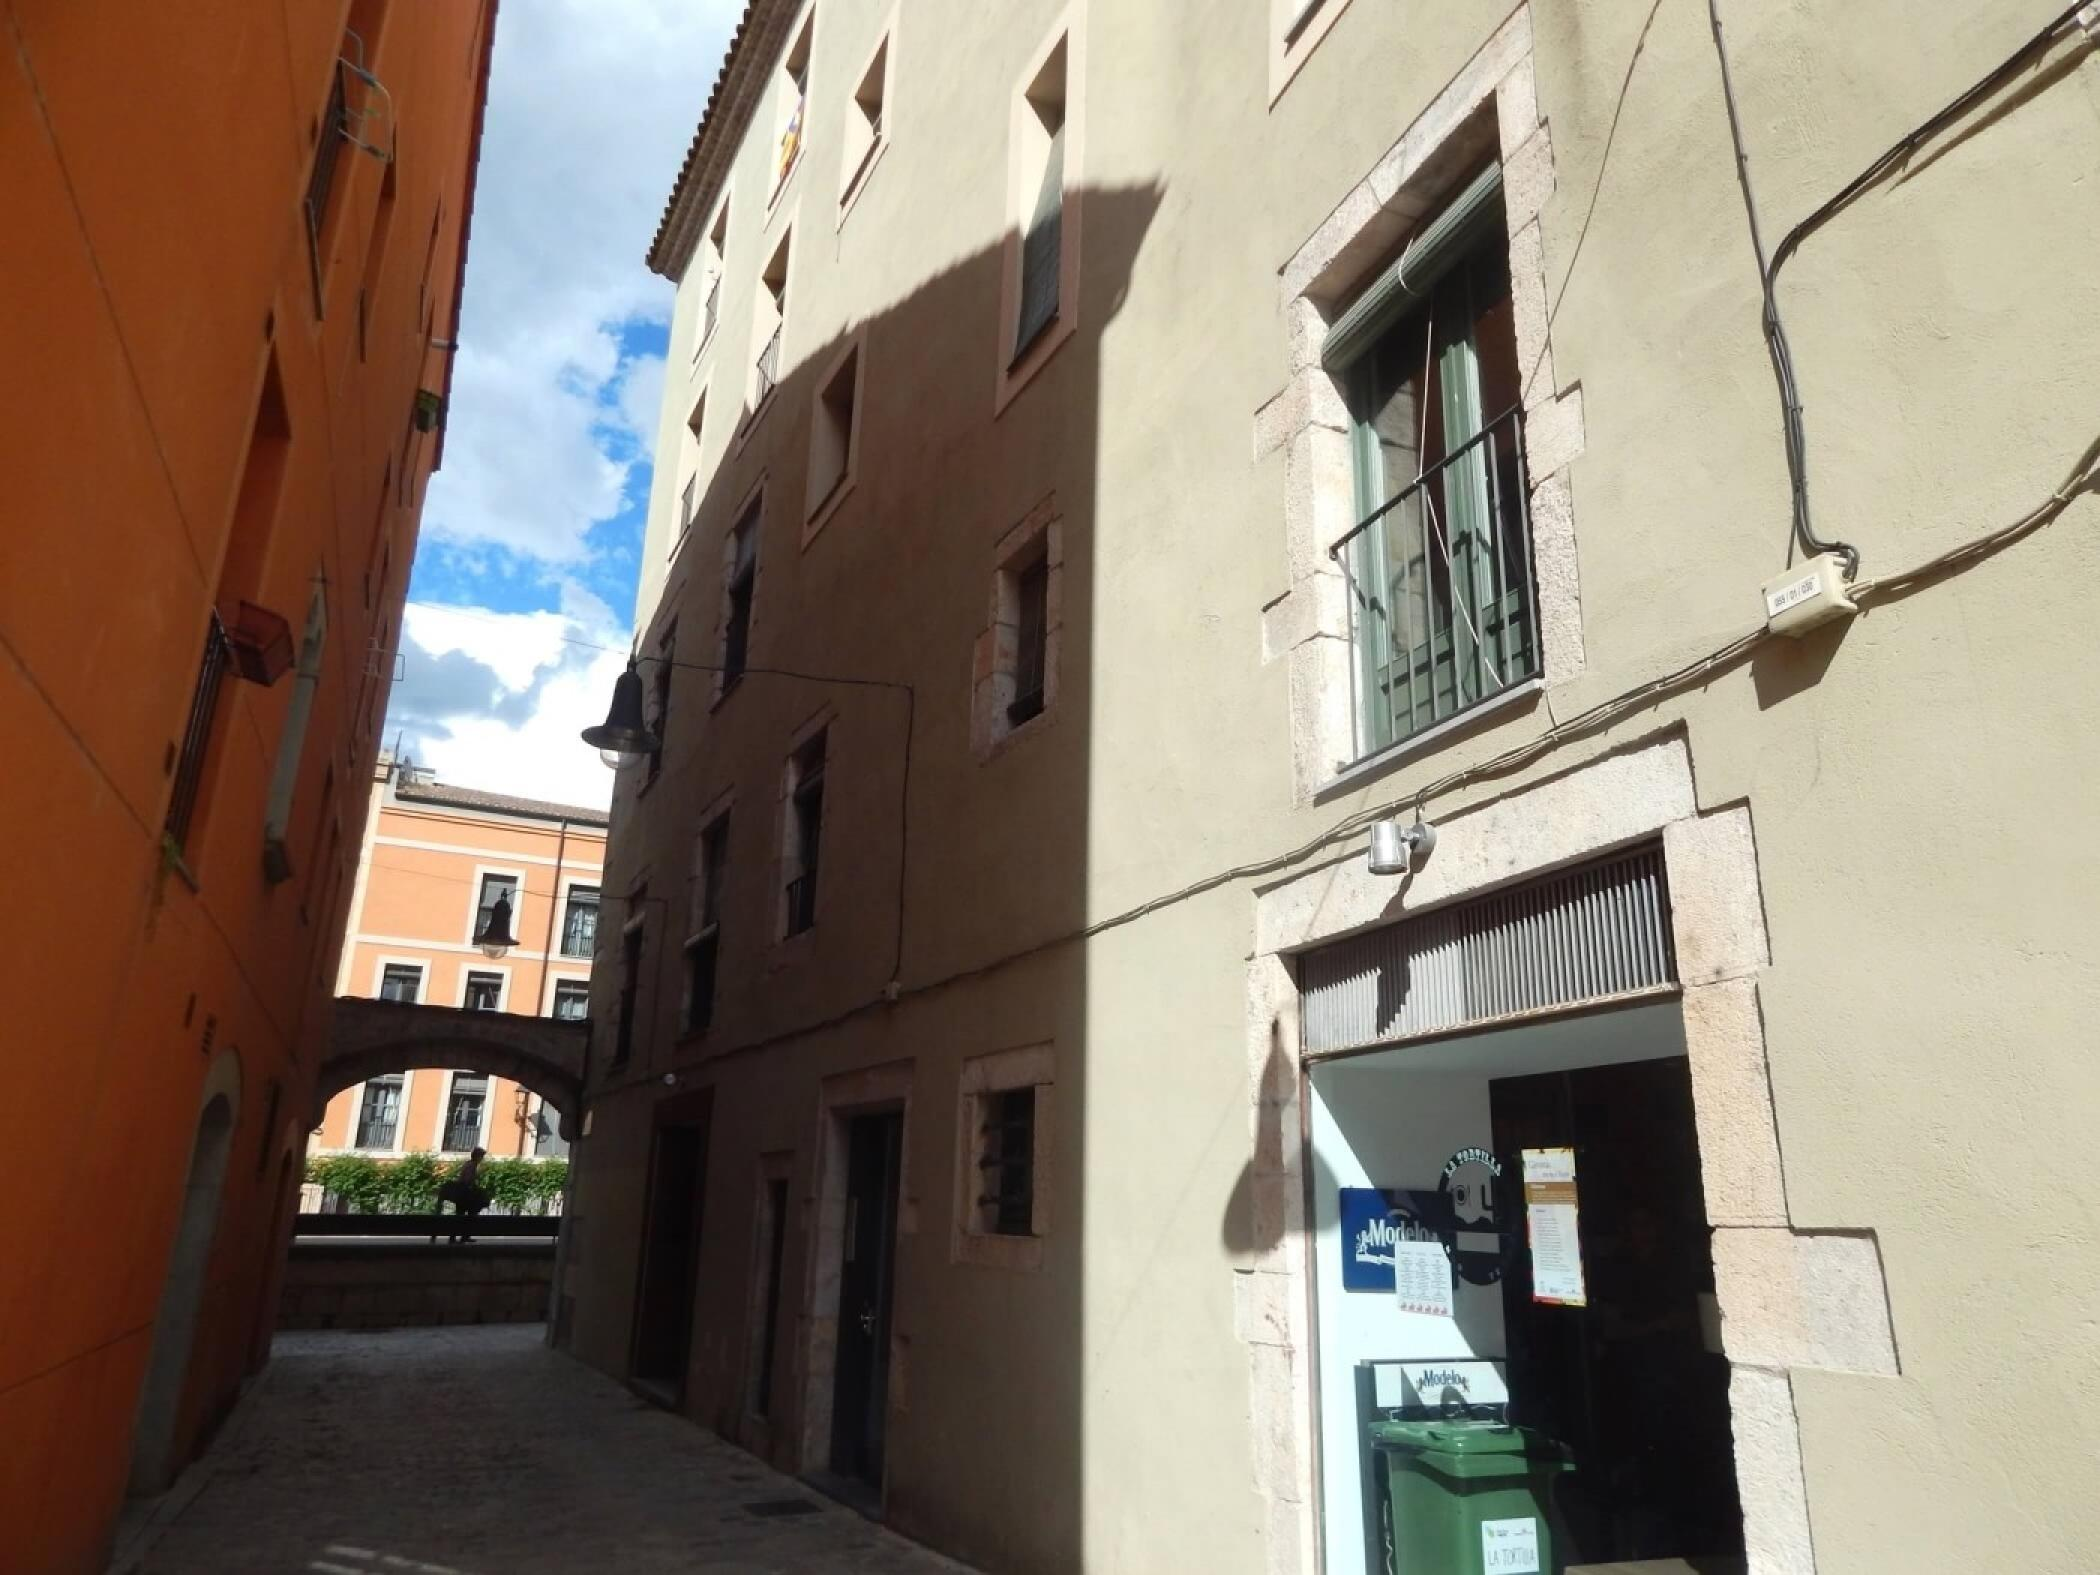 Rent Apartment in Girona - Girona Pou Rodó 22 - 16